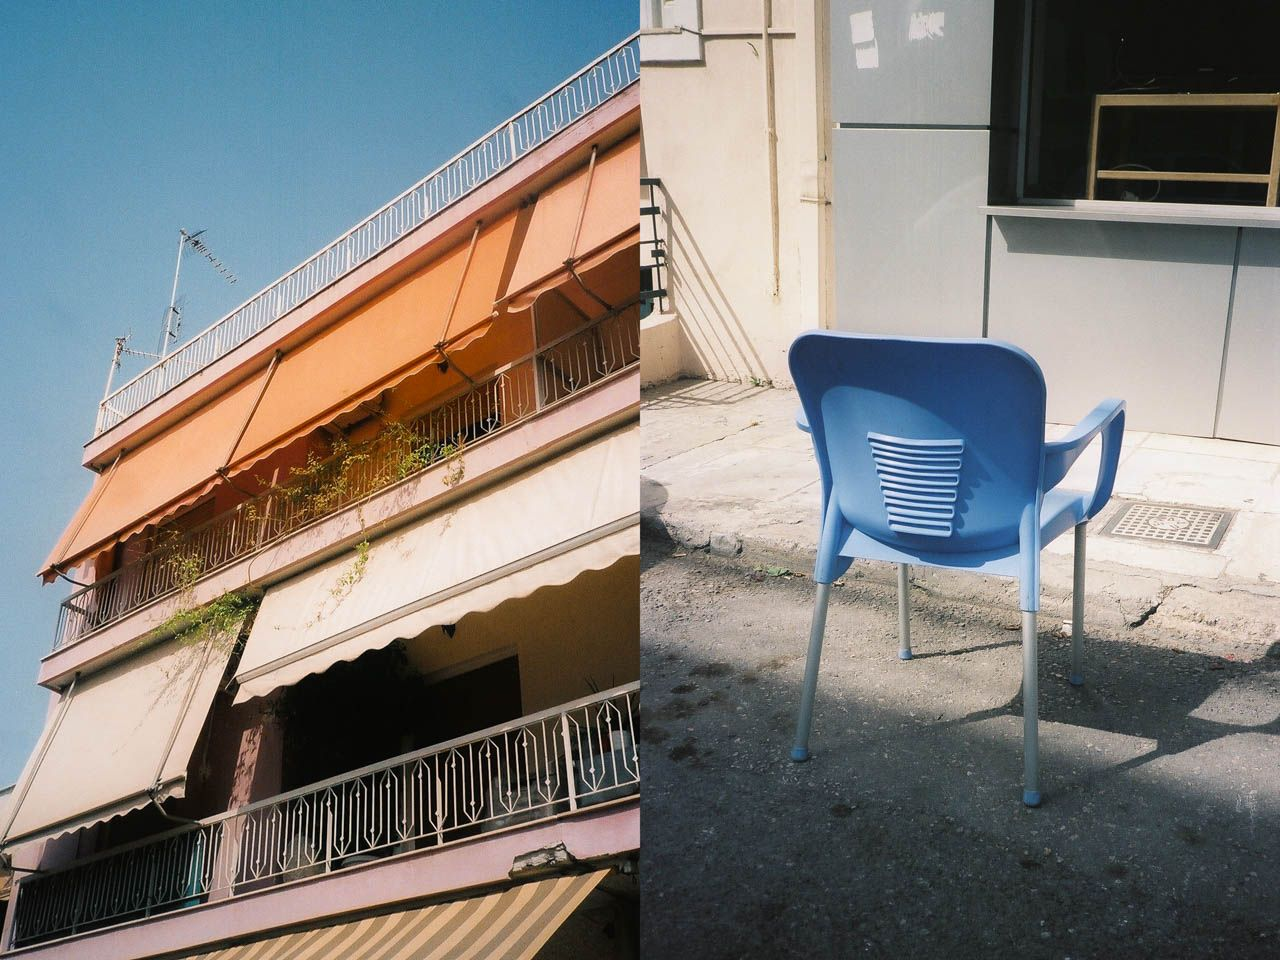 Awning and chairs in Athens, Greece.